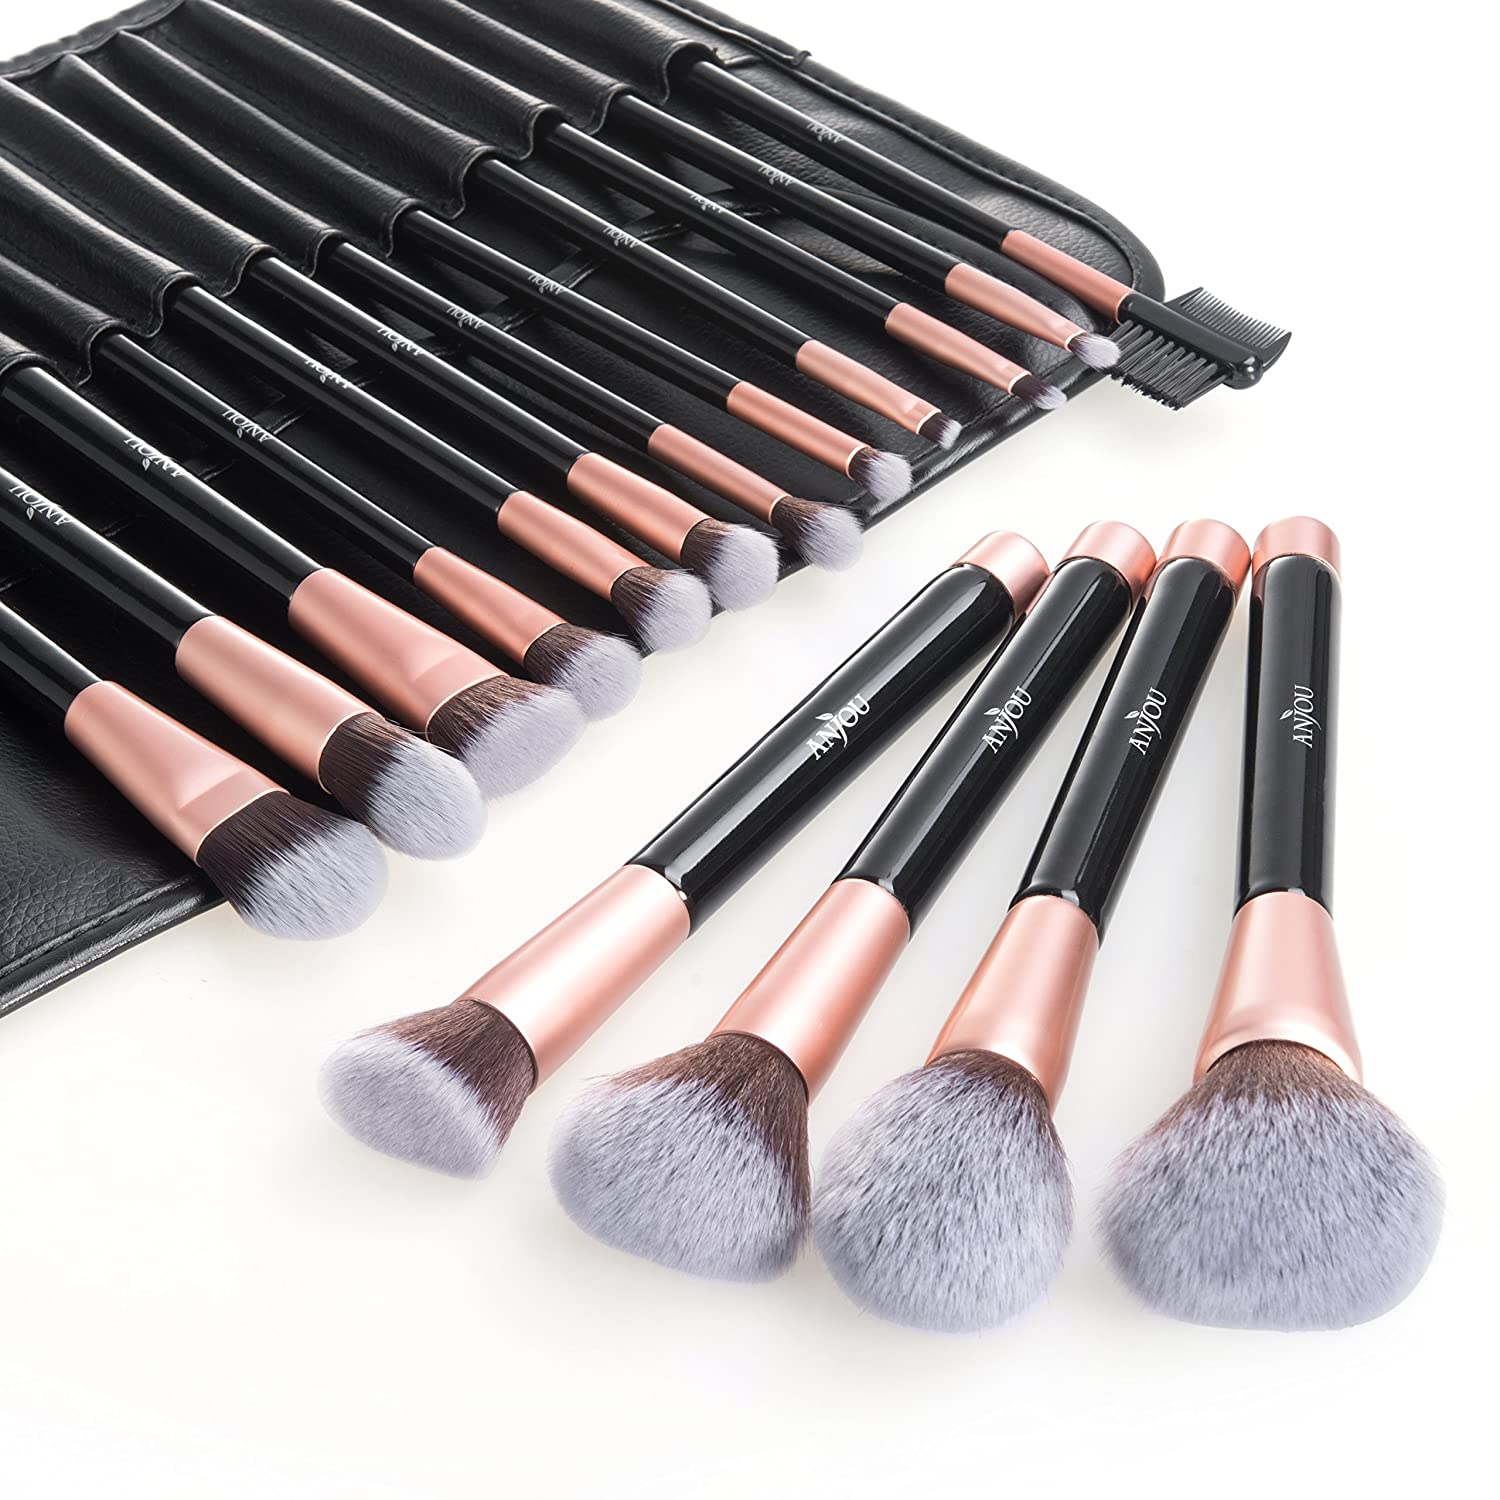 Makeup Brush Set, Anjou 16pcs Premium Cosmetic Makeup Brushes for Foundation Blending Blush Concealer Eye Shadow, Cruelty-Free Synthetic Fiber Bristles, PU Leather Roll Clutch Included, Rose Golden